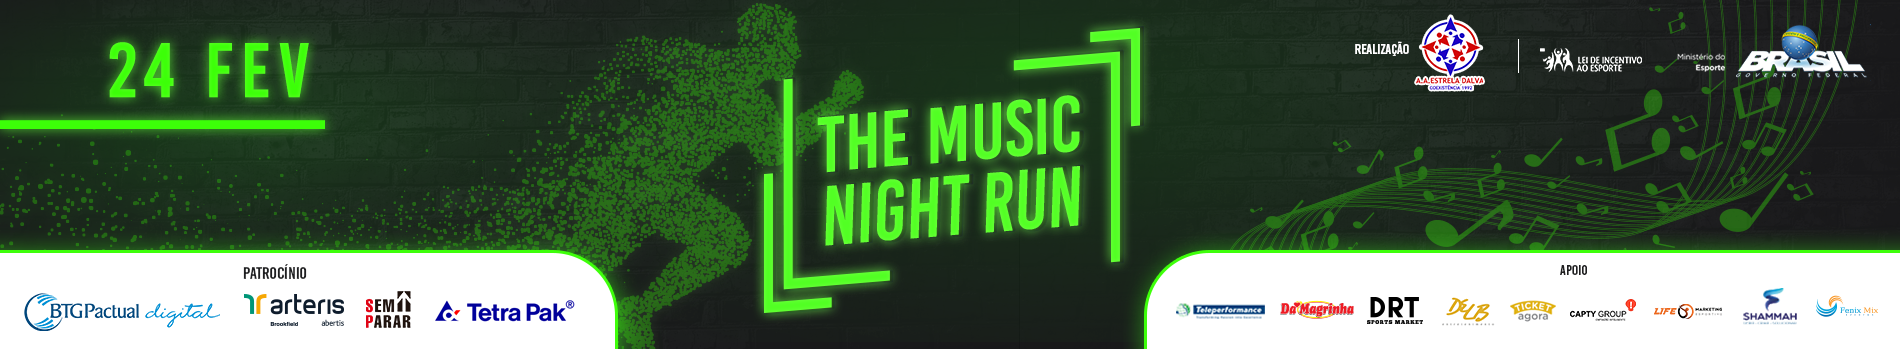 THE MUSIC NIGHT RUN